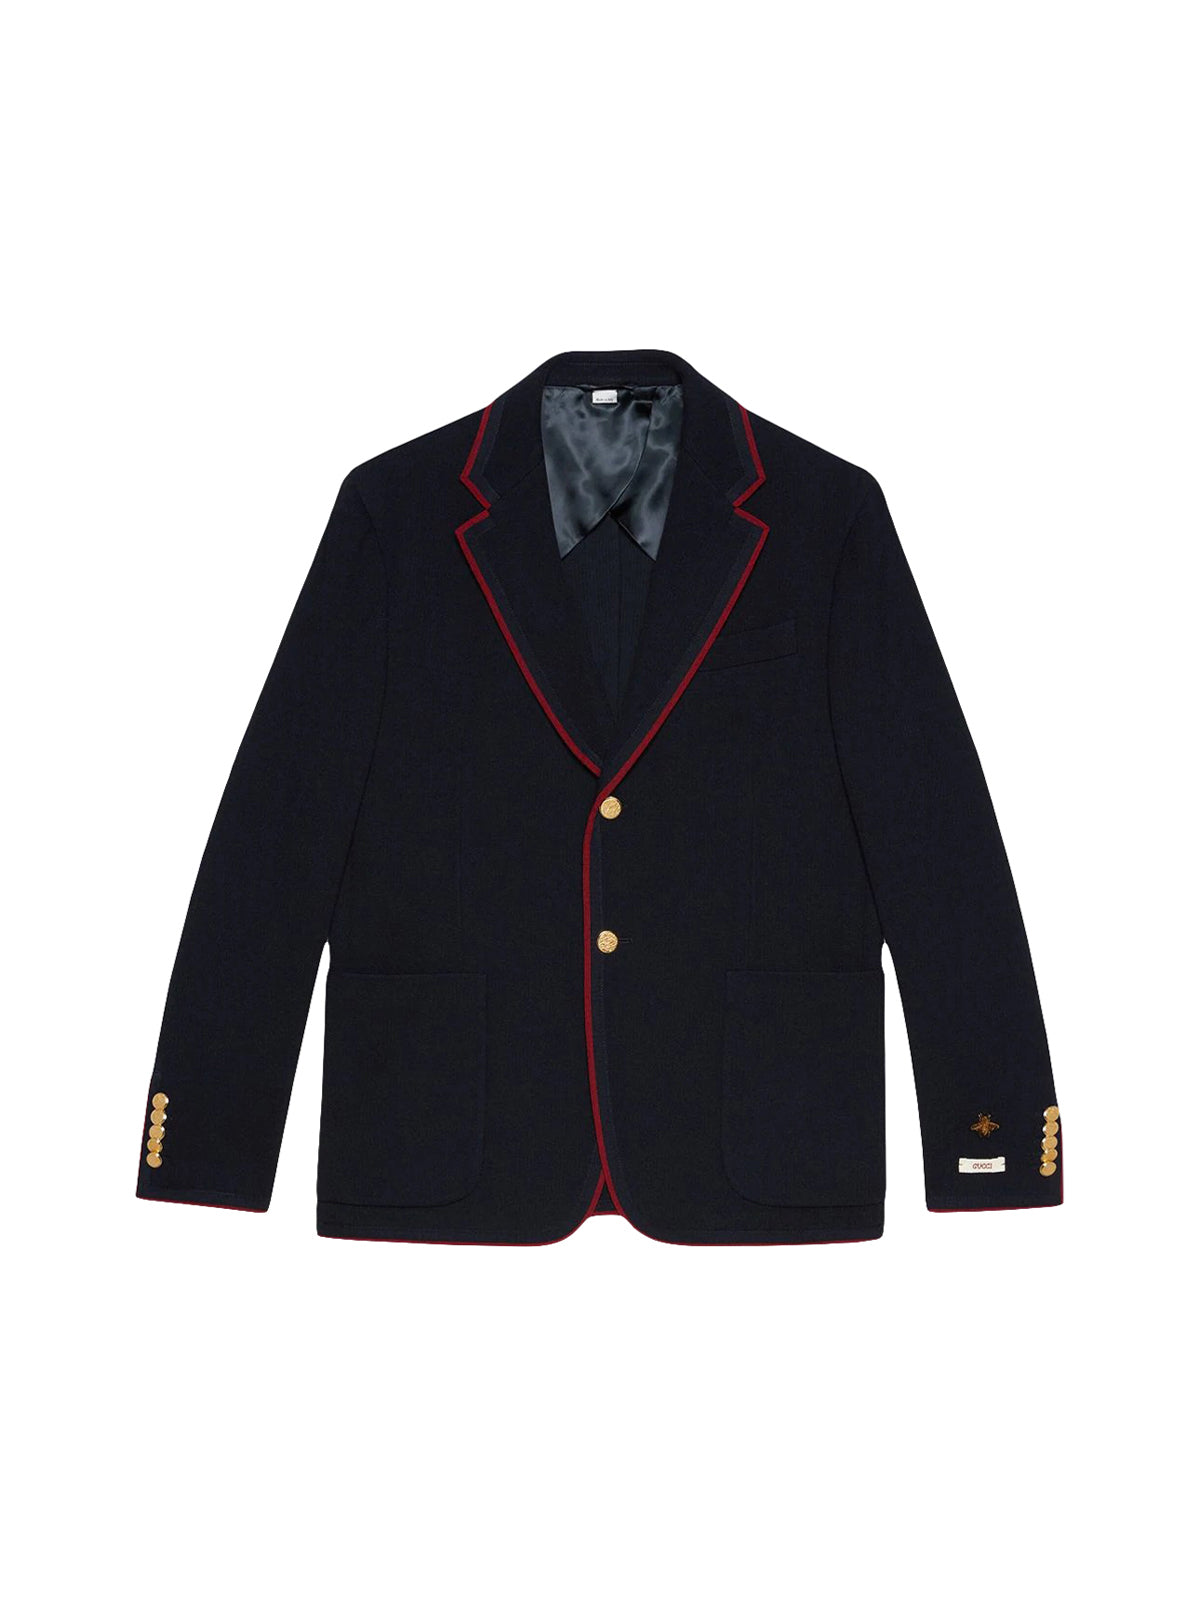 Blazer with contrasting edges